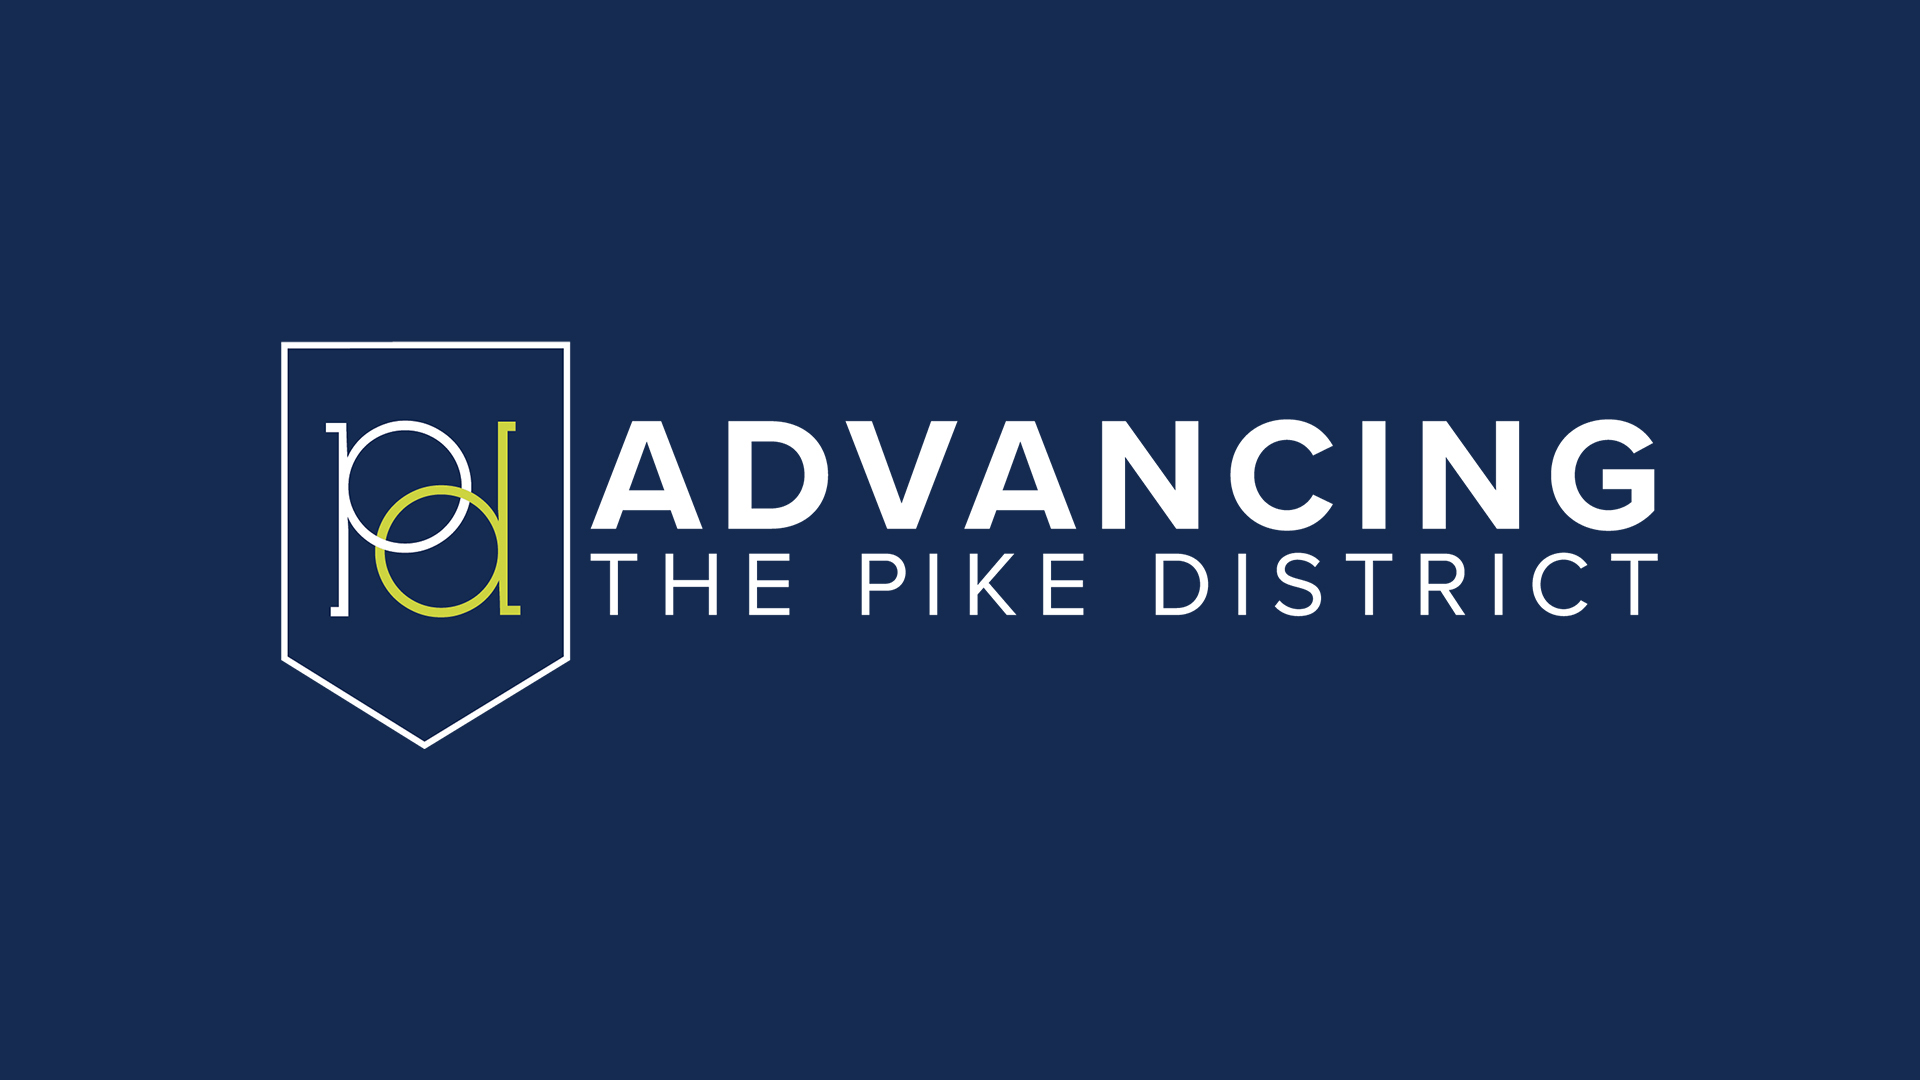 advancing the pike district